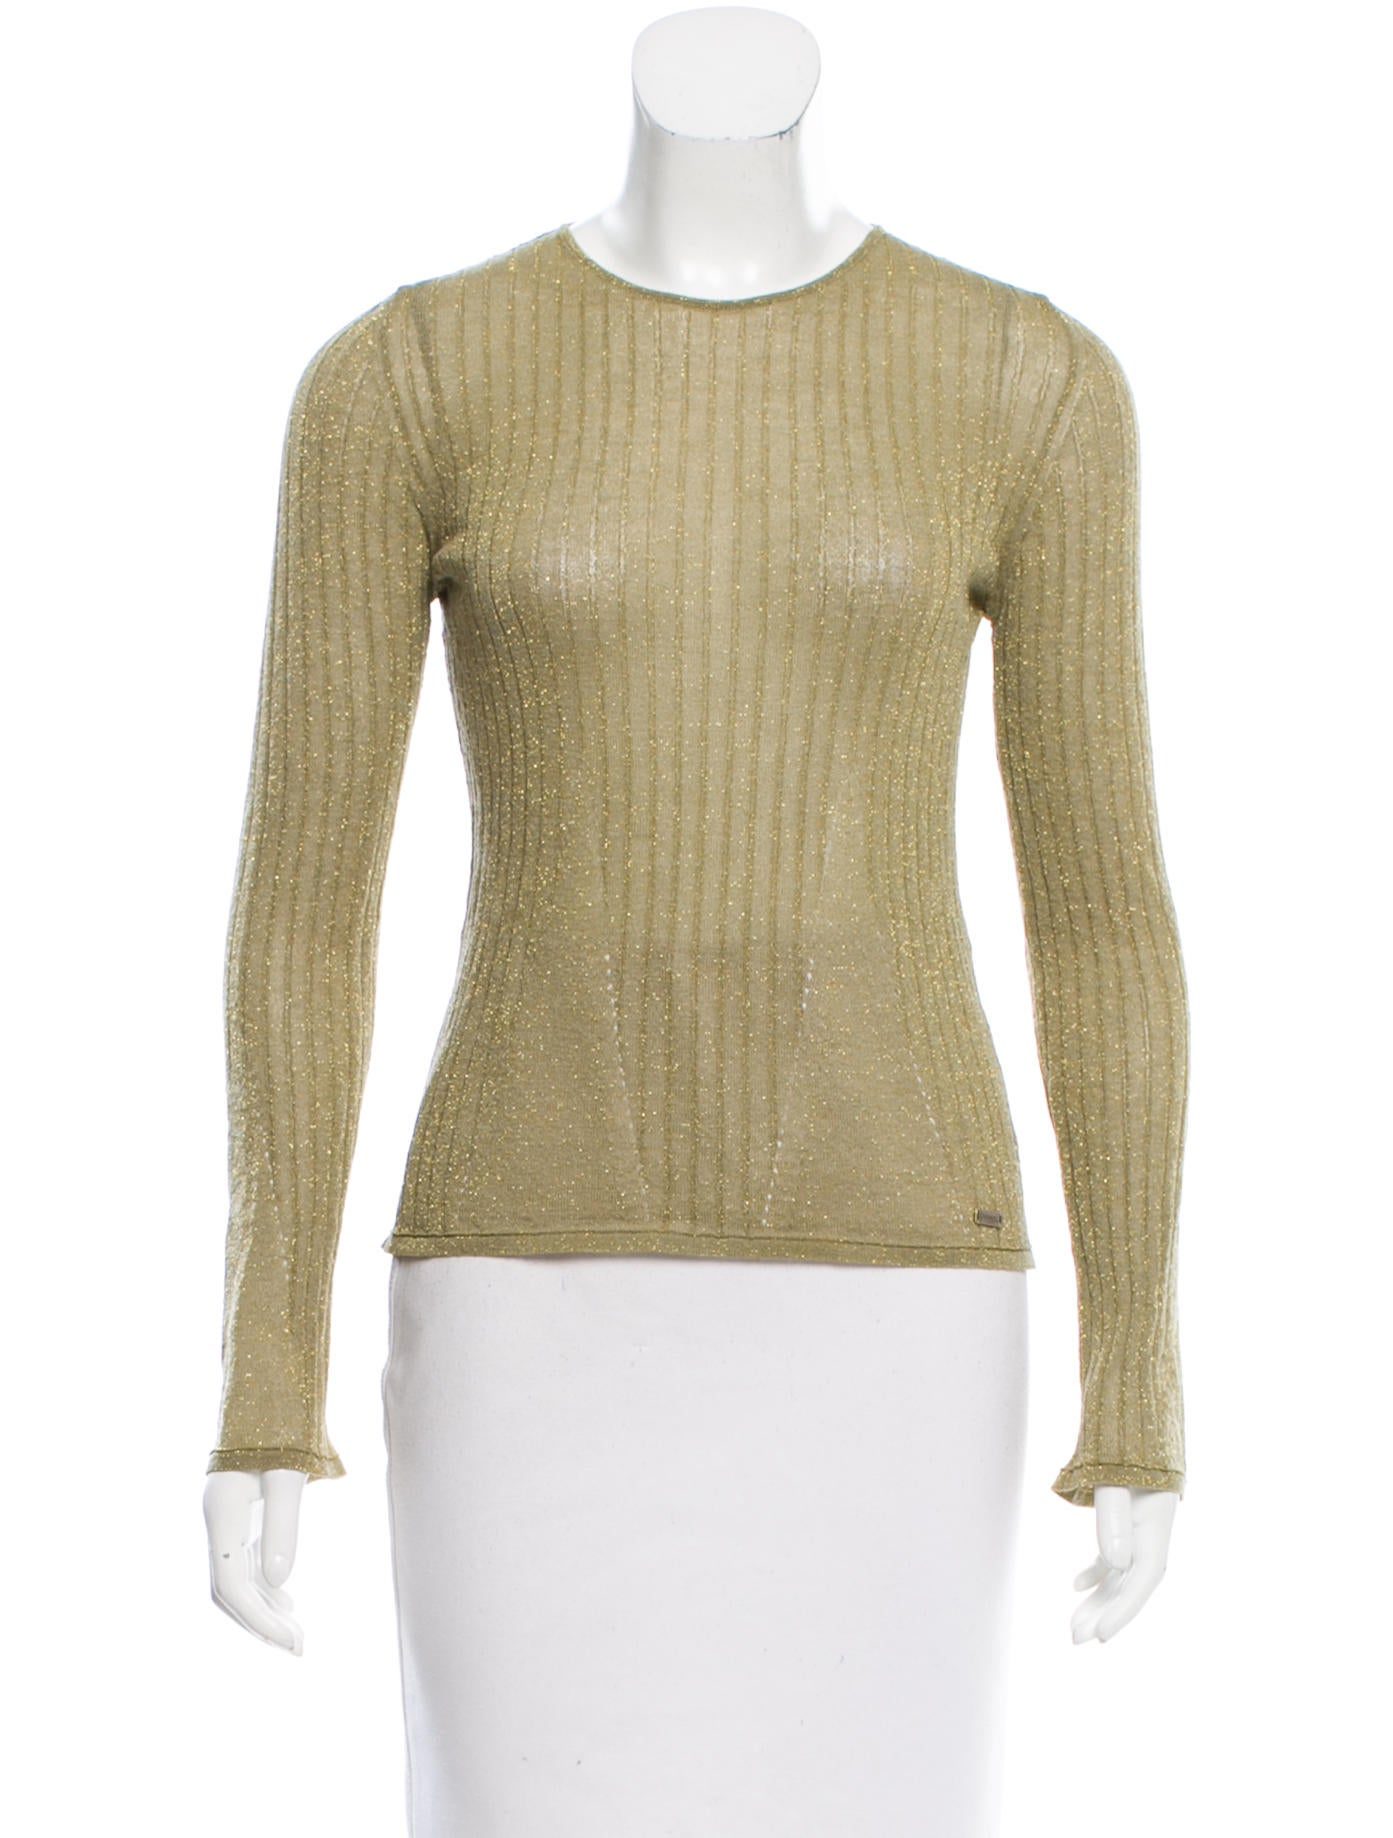 Chanel wool metallic top clothing cha168272 the realreal for Best wool shirt jackets